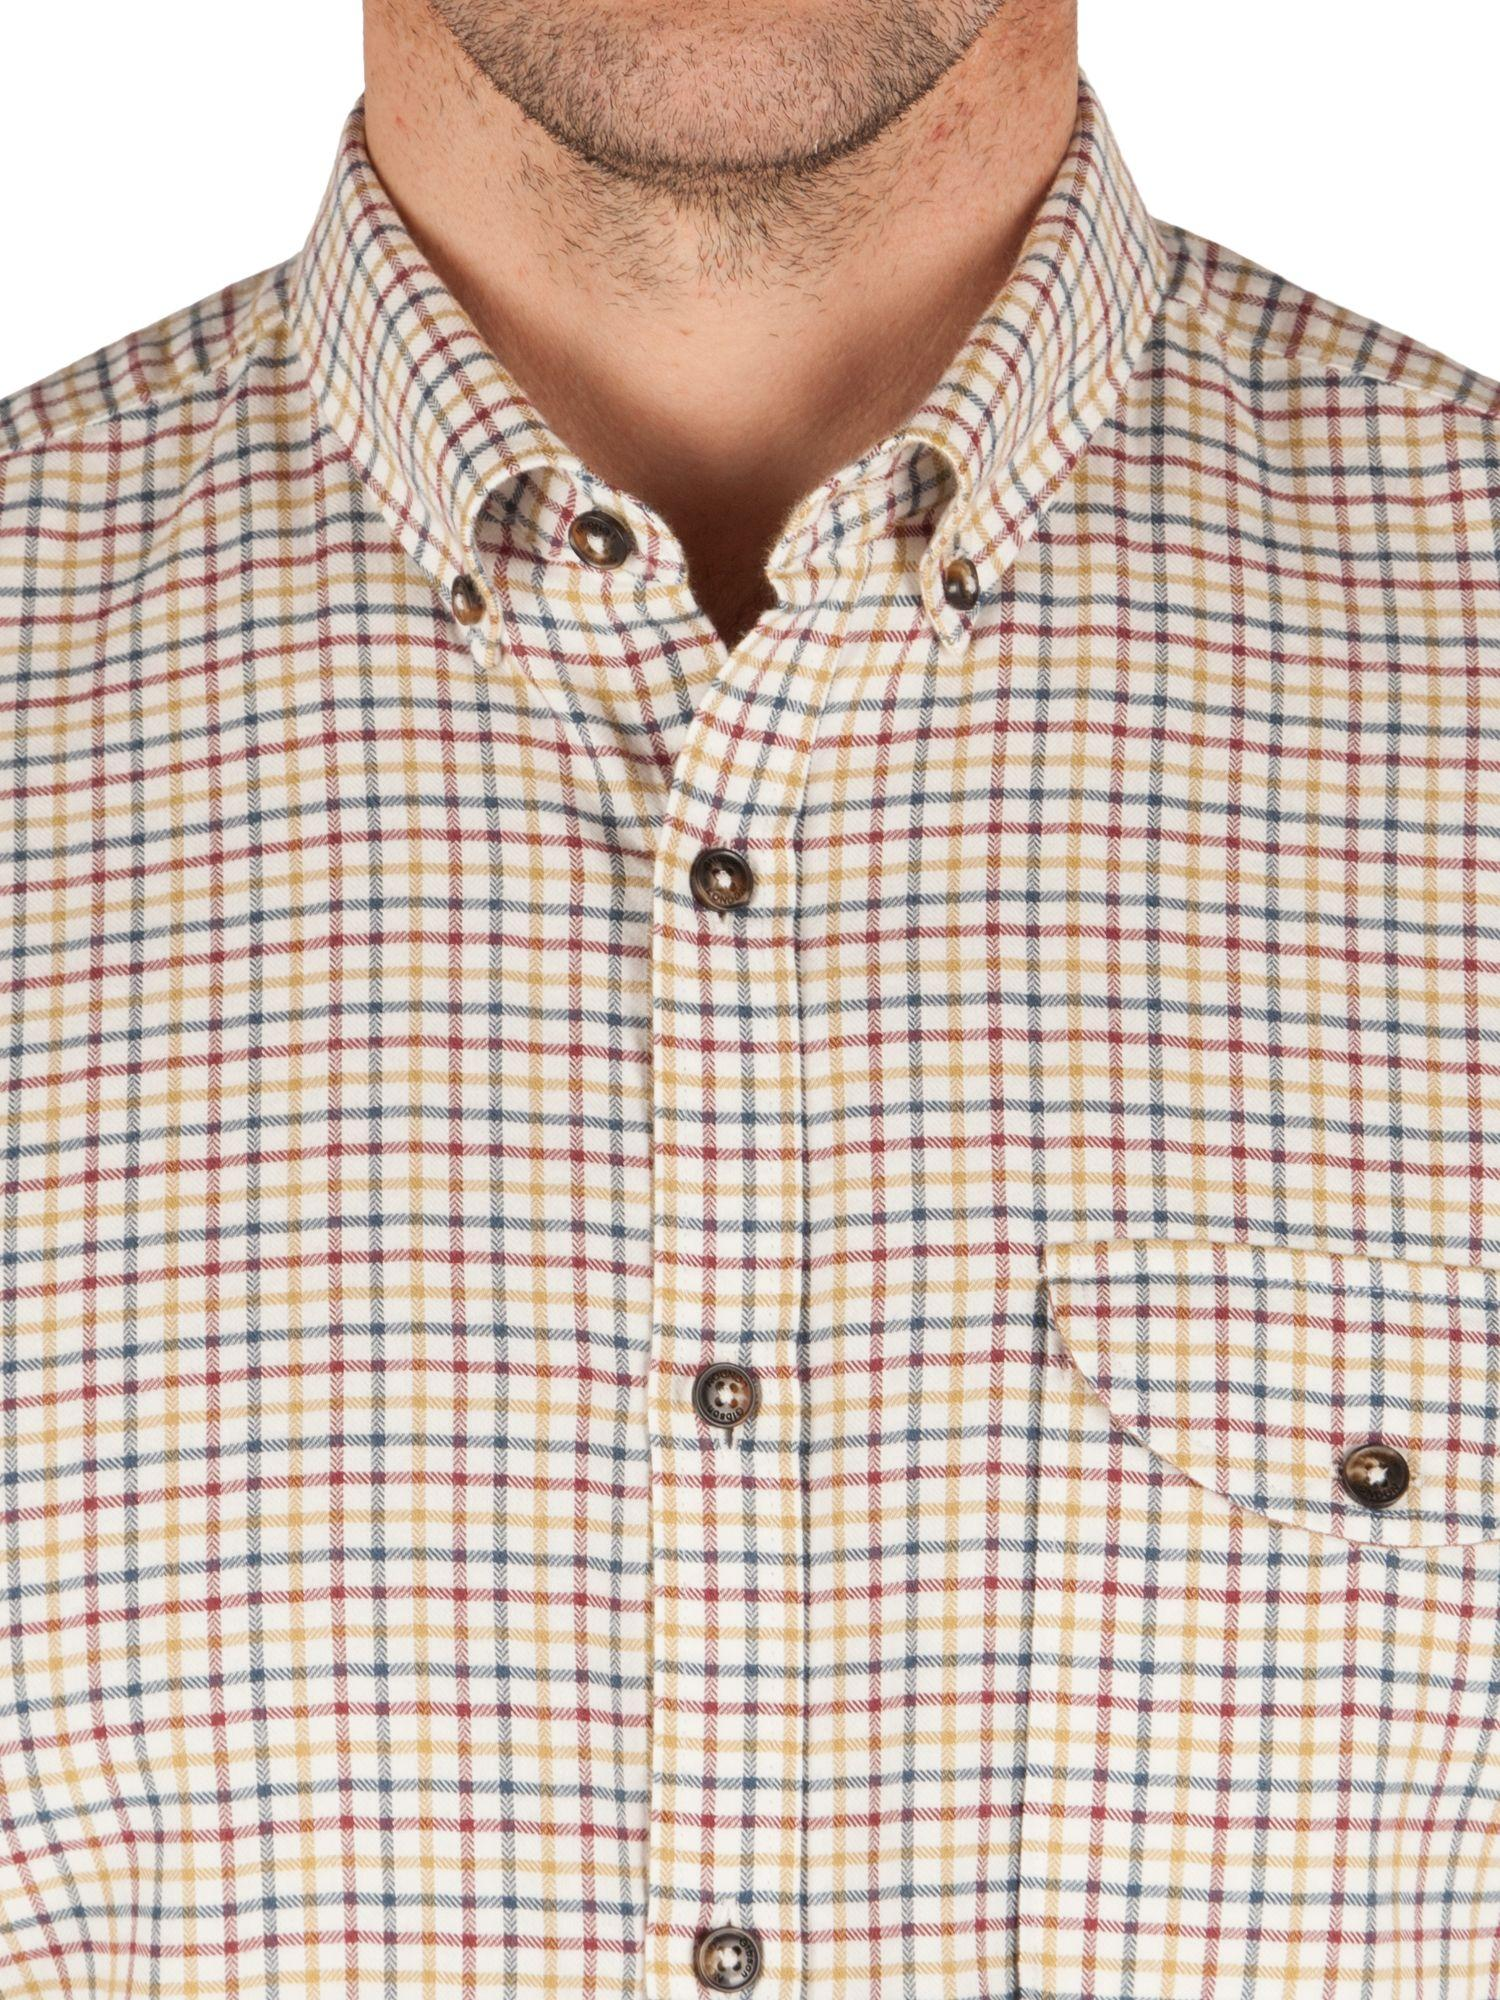 Gibson Cotton Check Tailored Fit Long Sleeve Shirt in Tan (Brown) for Men